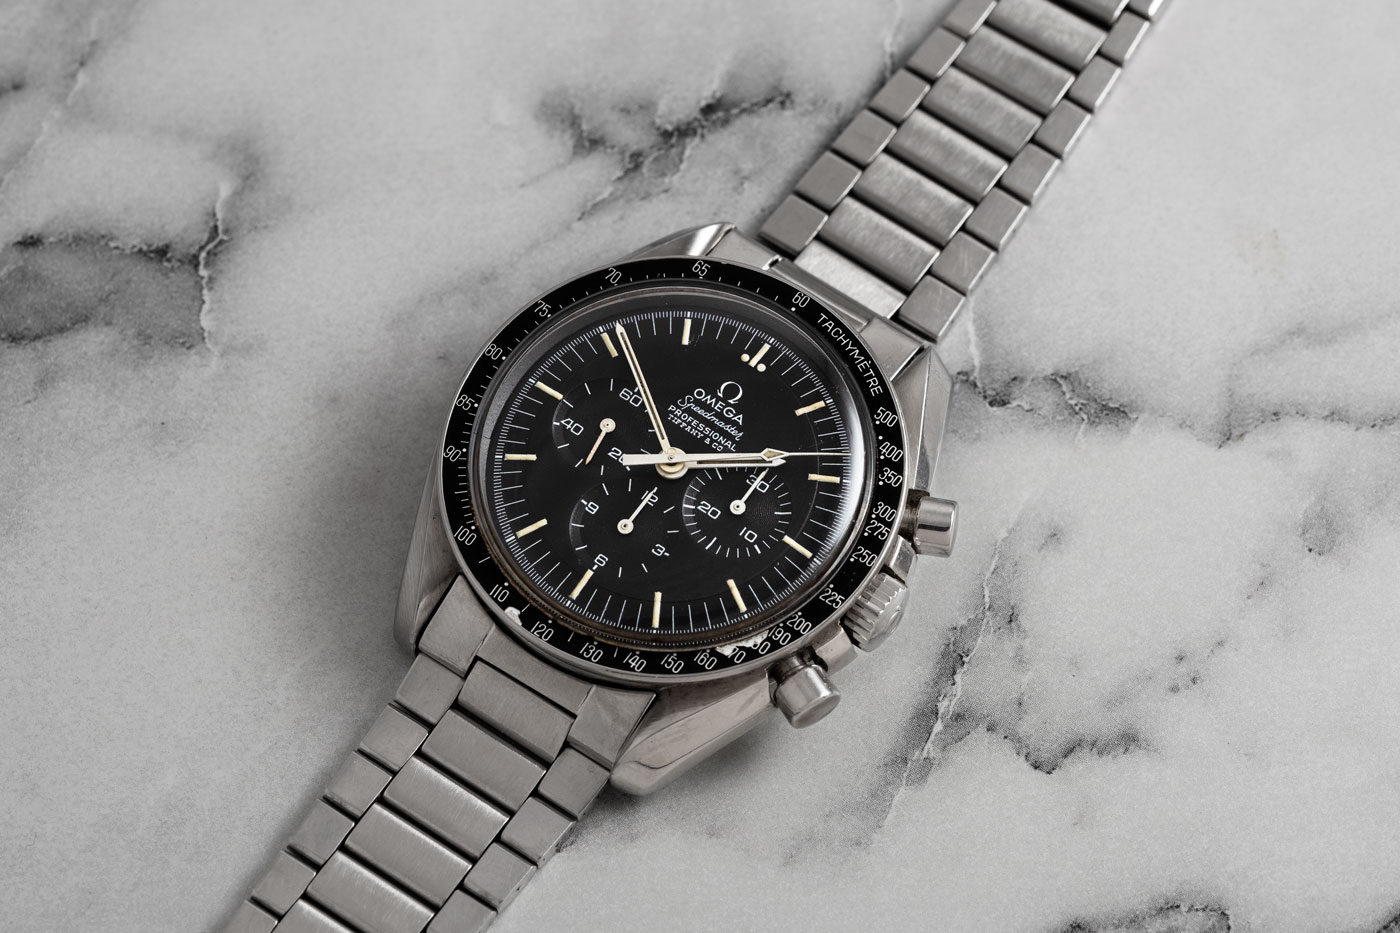 Tiffany Stamped Speedmaster ref. 145.022-69, part of the Phillips Hong Kong Watch Auction: Eight (Image © Revolution)